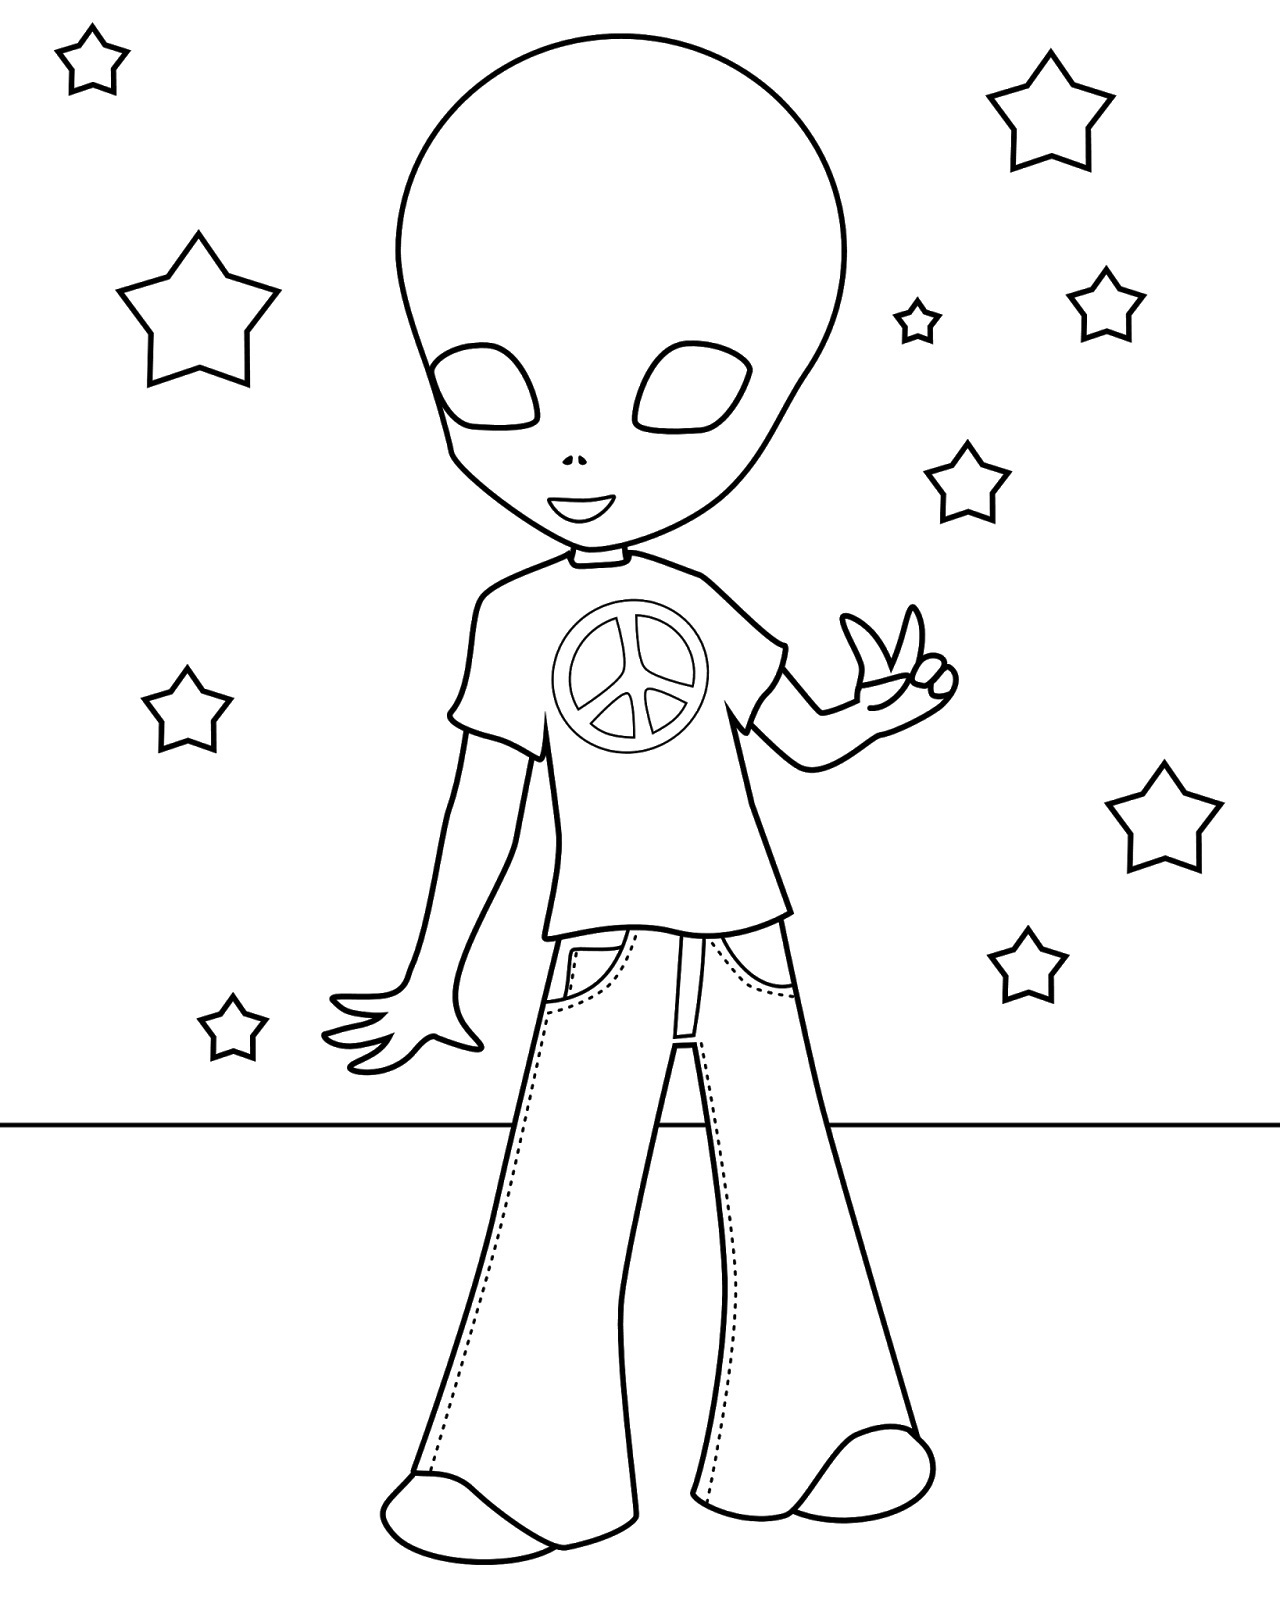 Free Printable Alien Coloring Pages